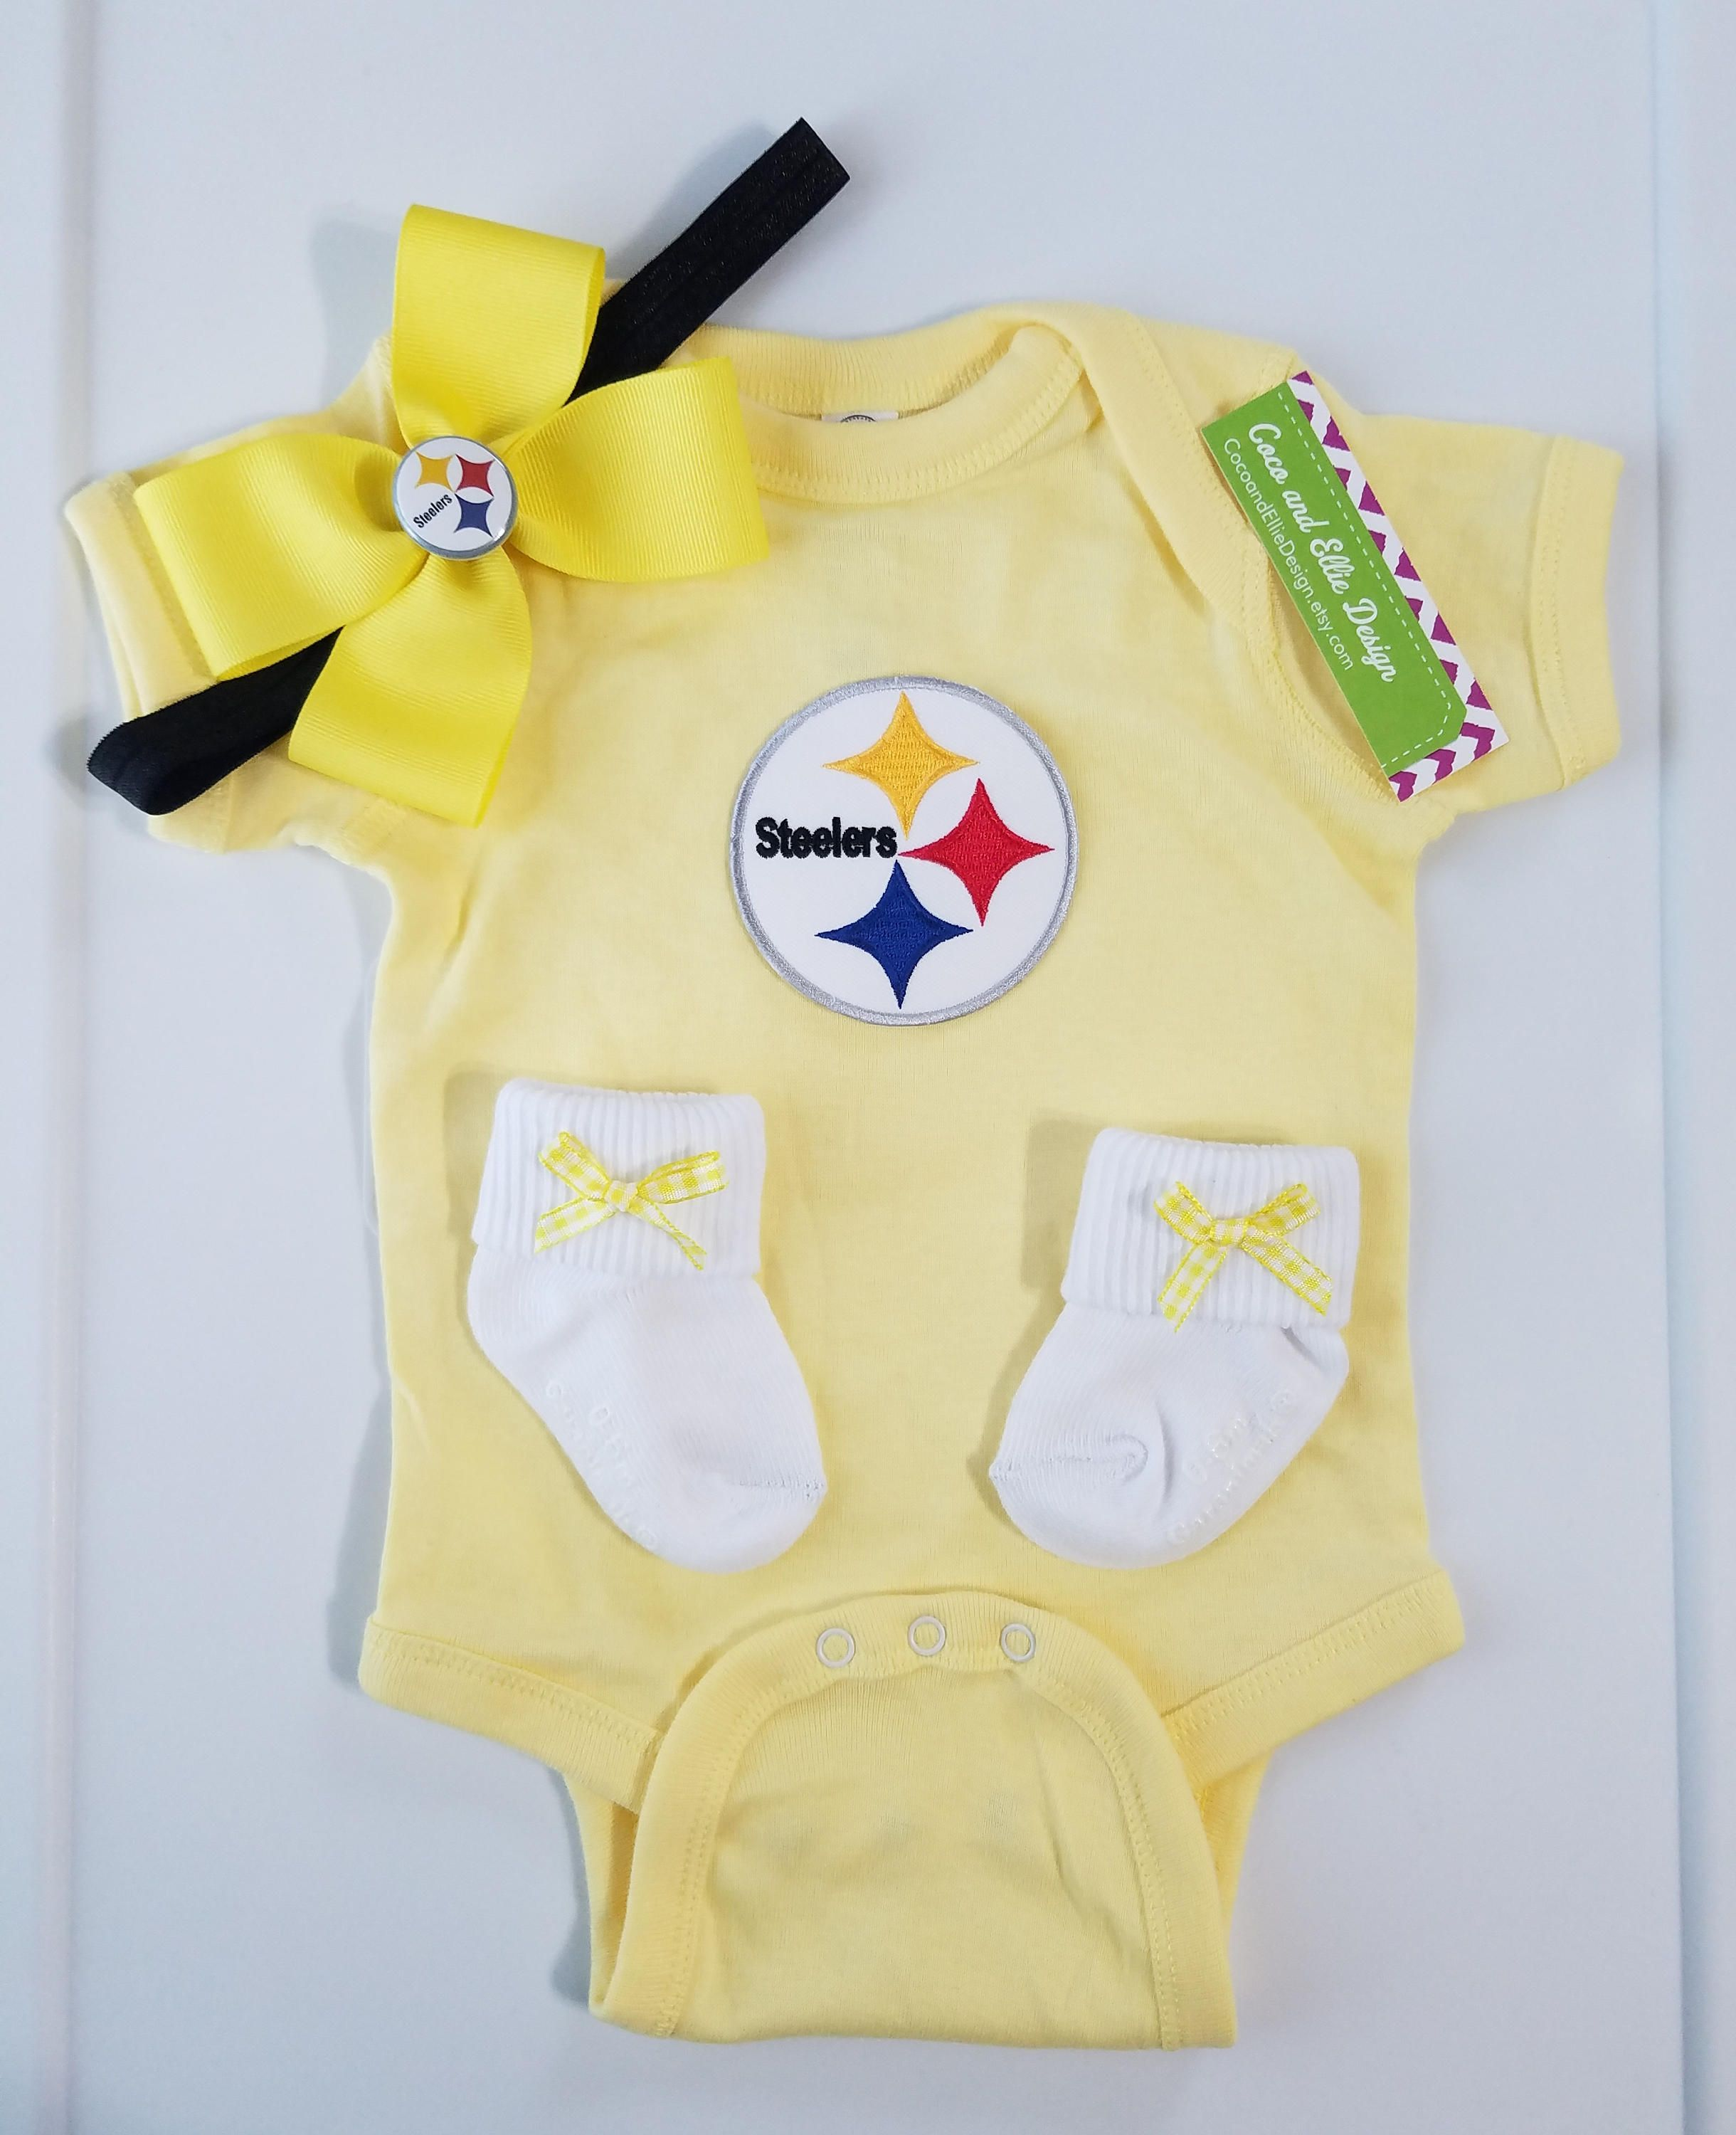 Pittsburg Steelers baby girl outfit Steelers baby girl shower t